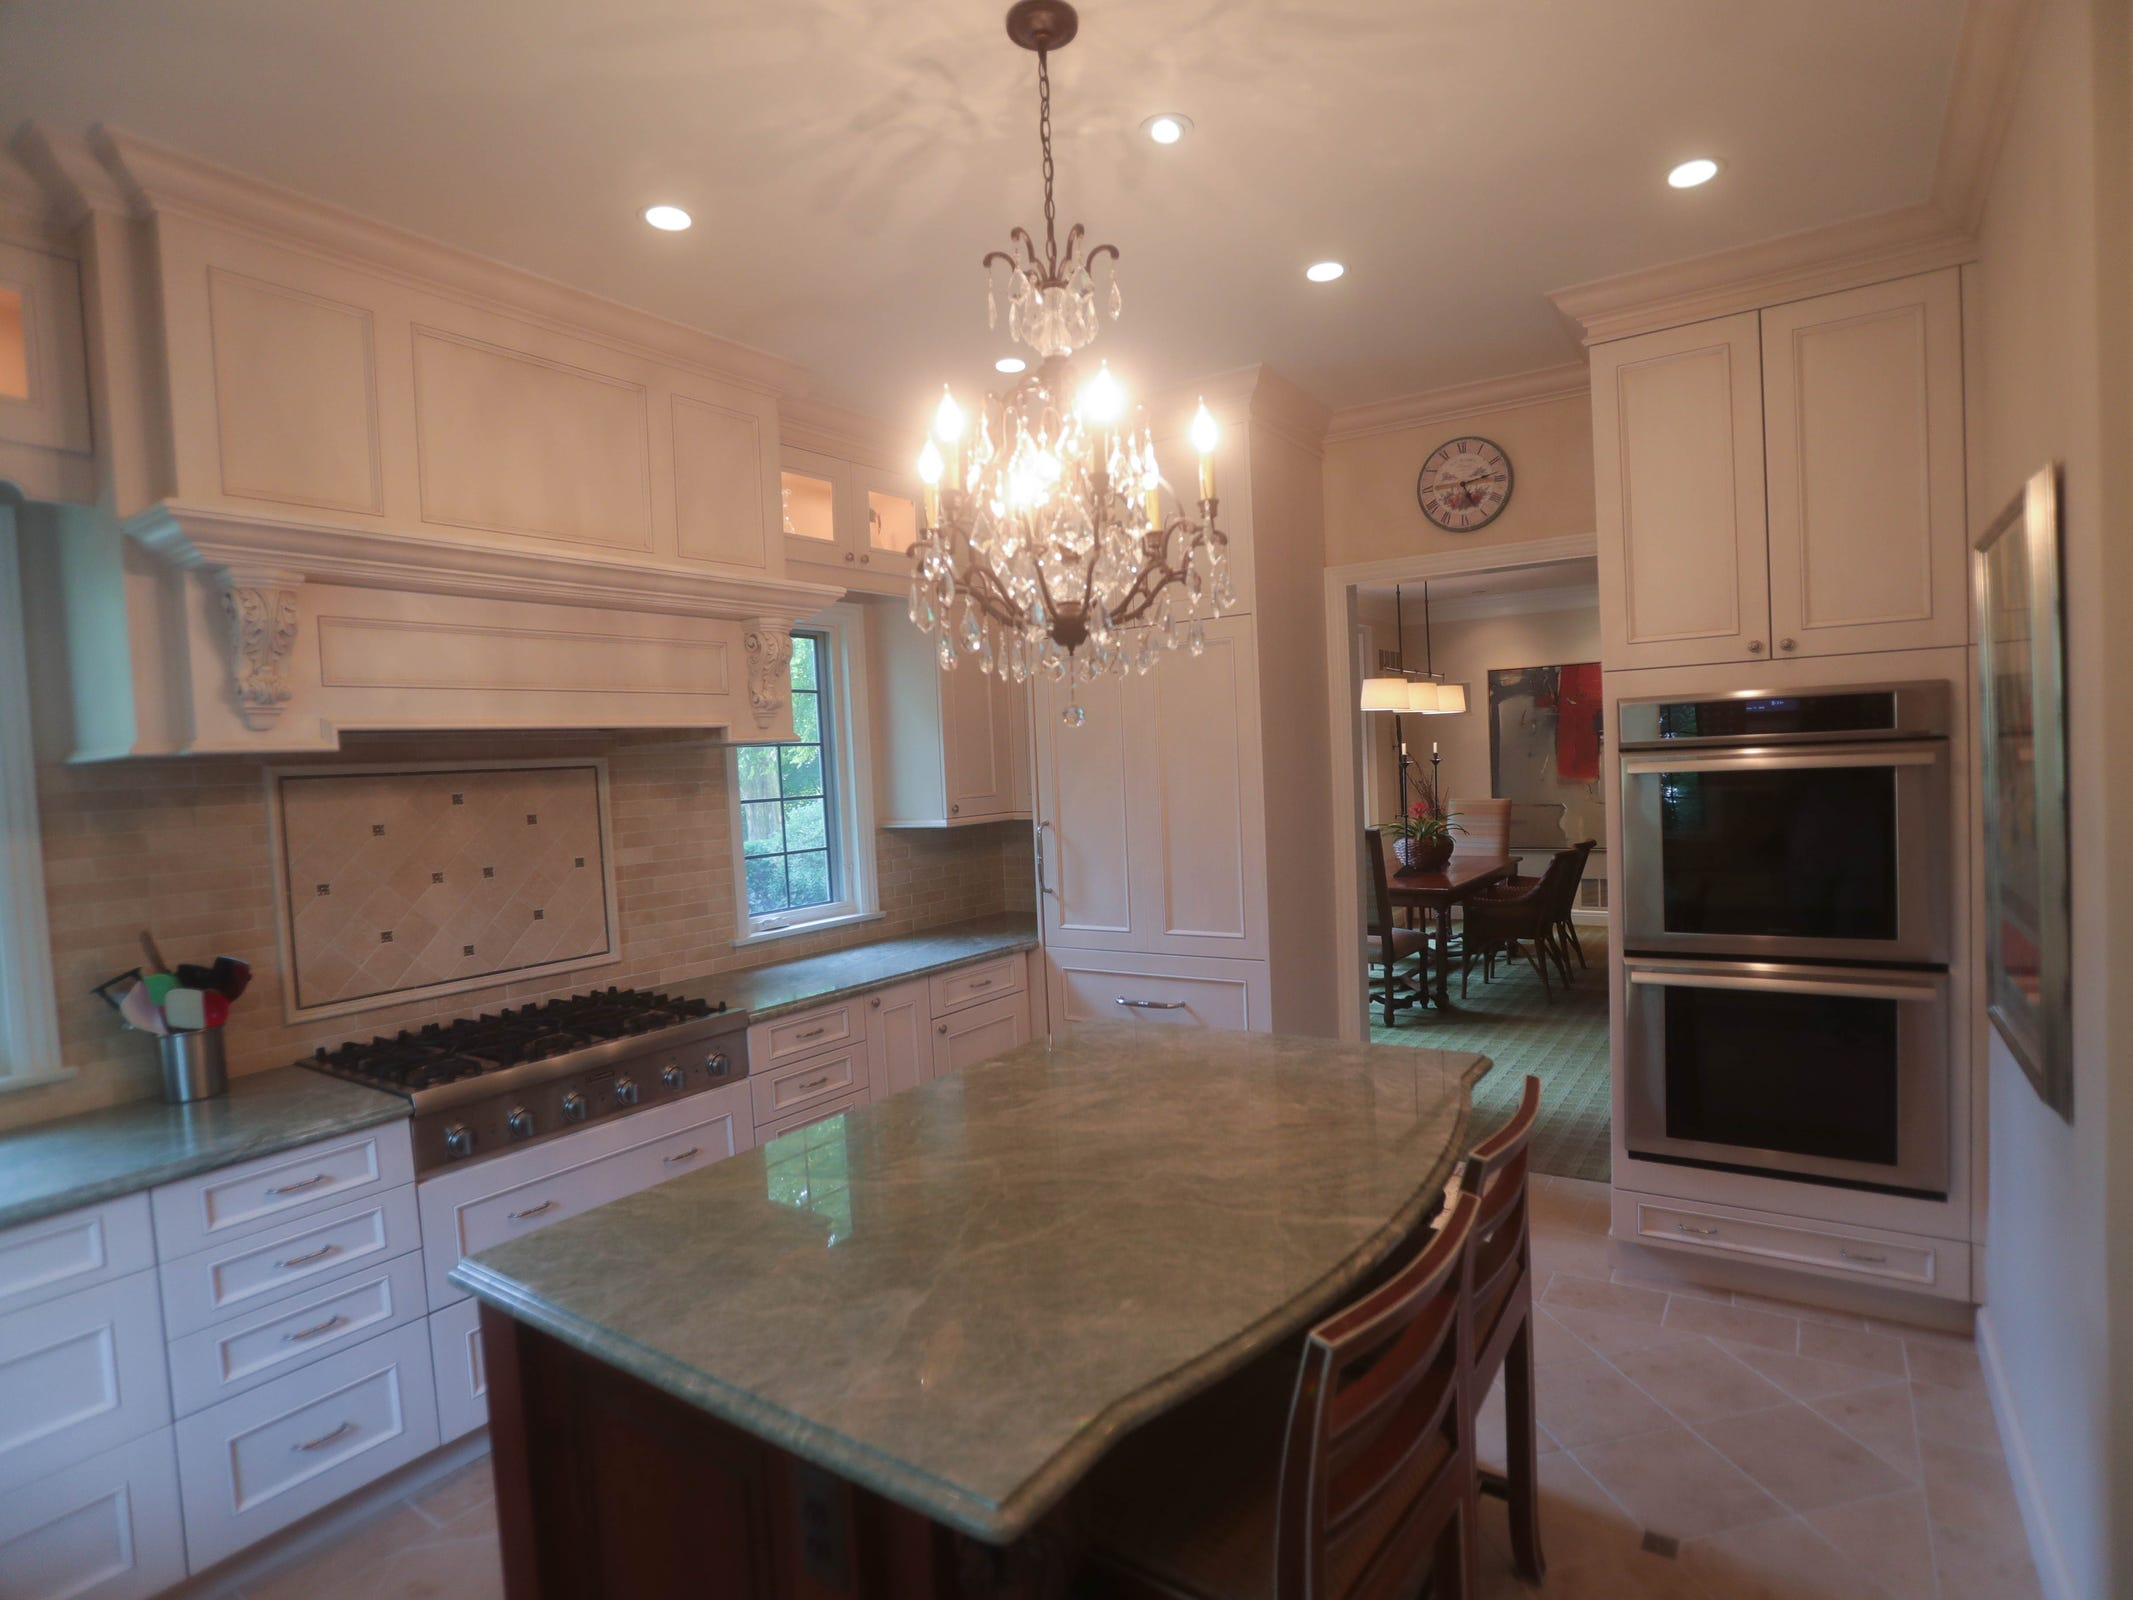 The kitchen was enlarged and remodeled with glazed antique white cabinets, granite counters and a stone tile floor.